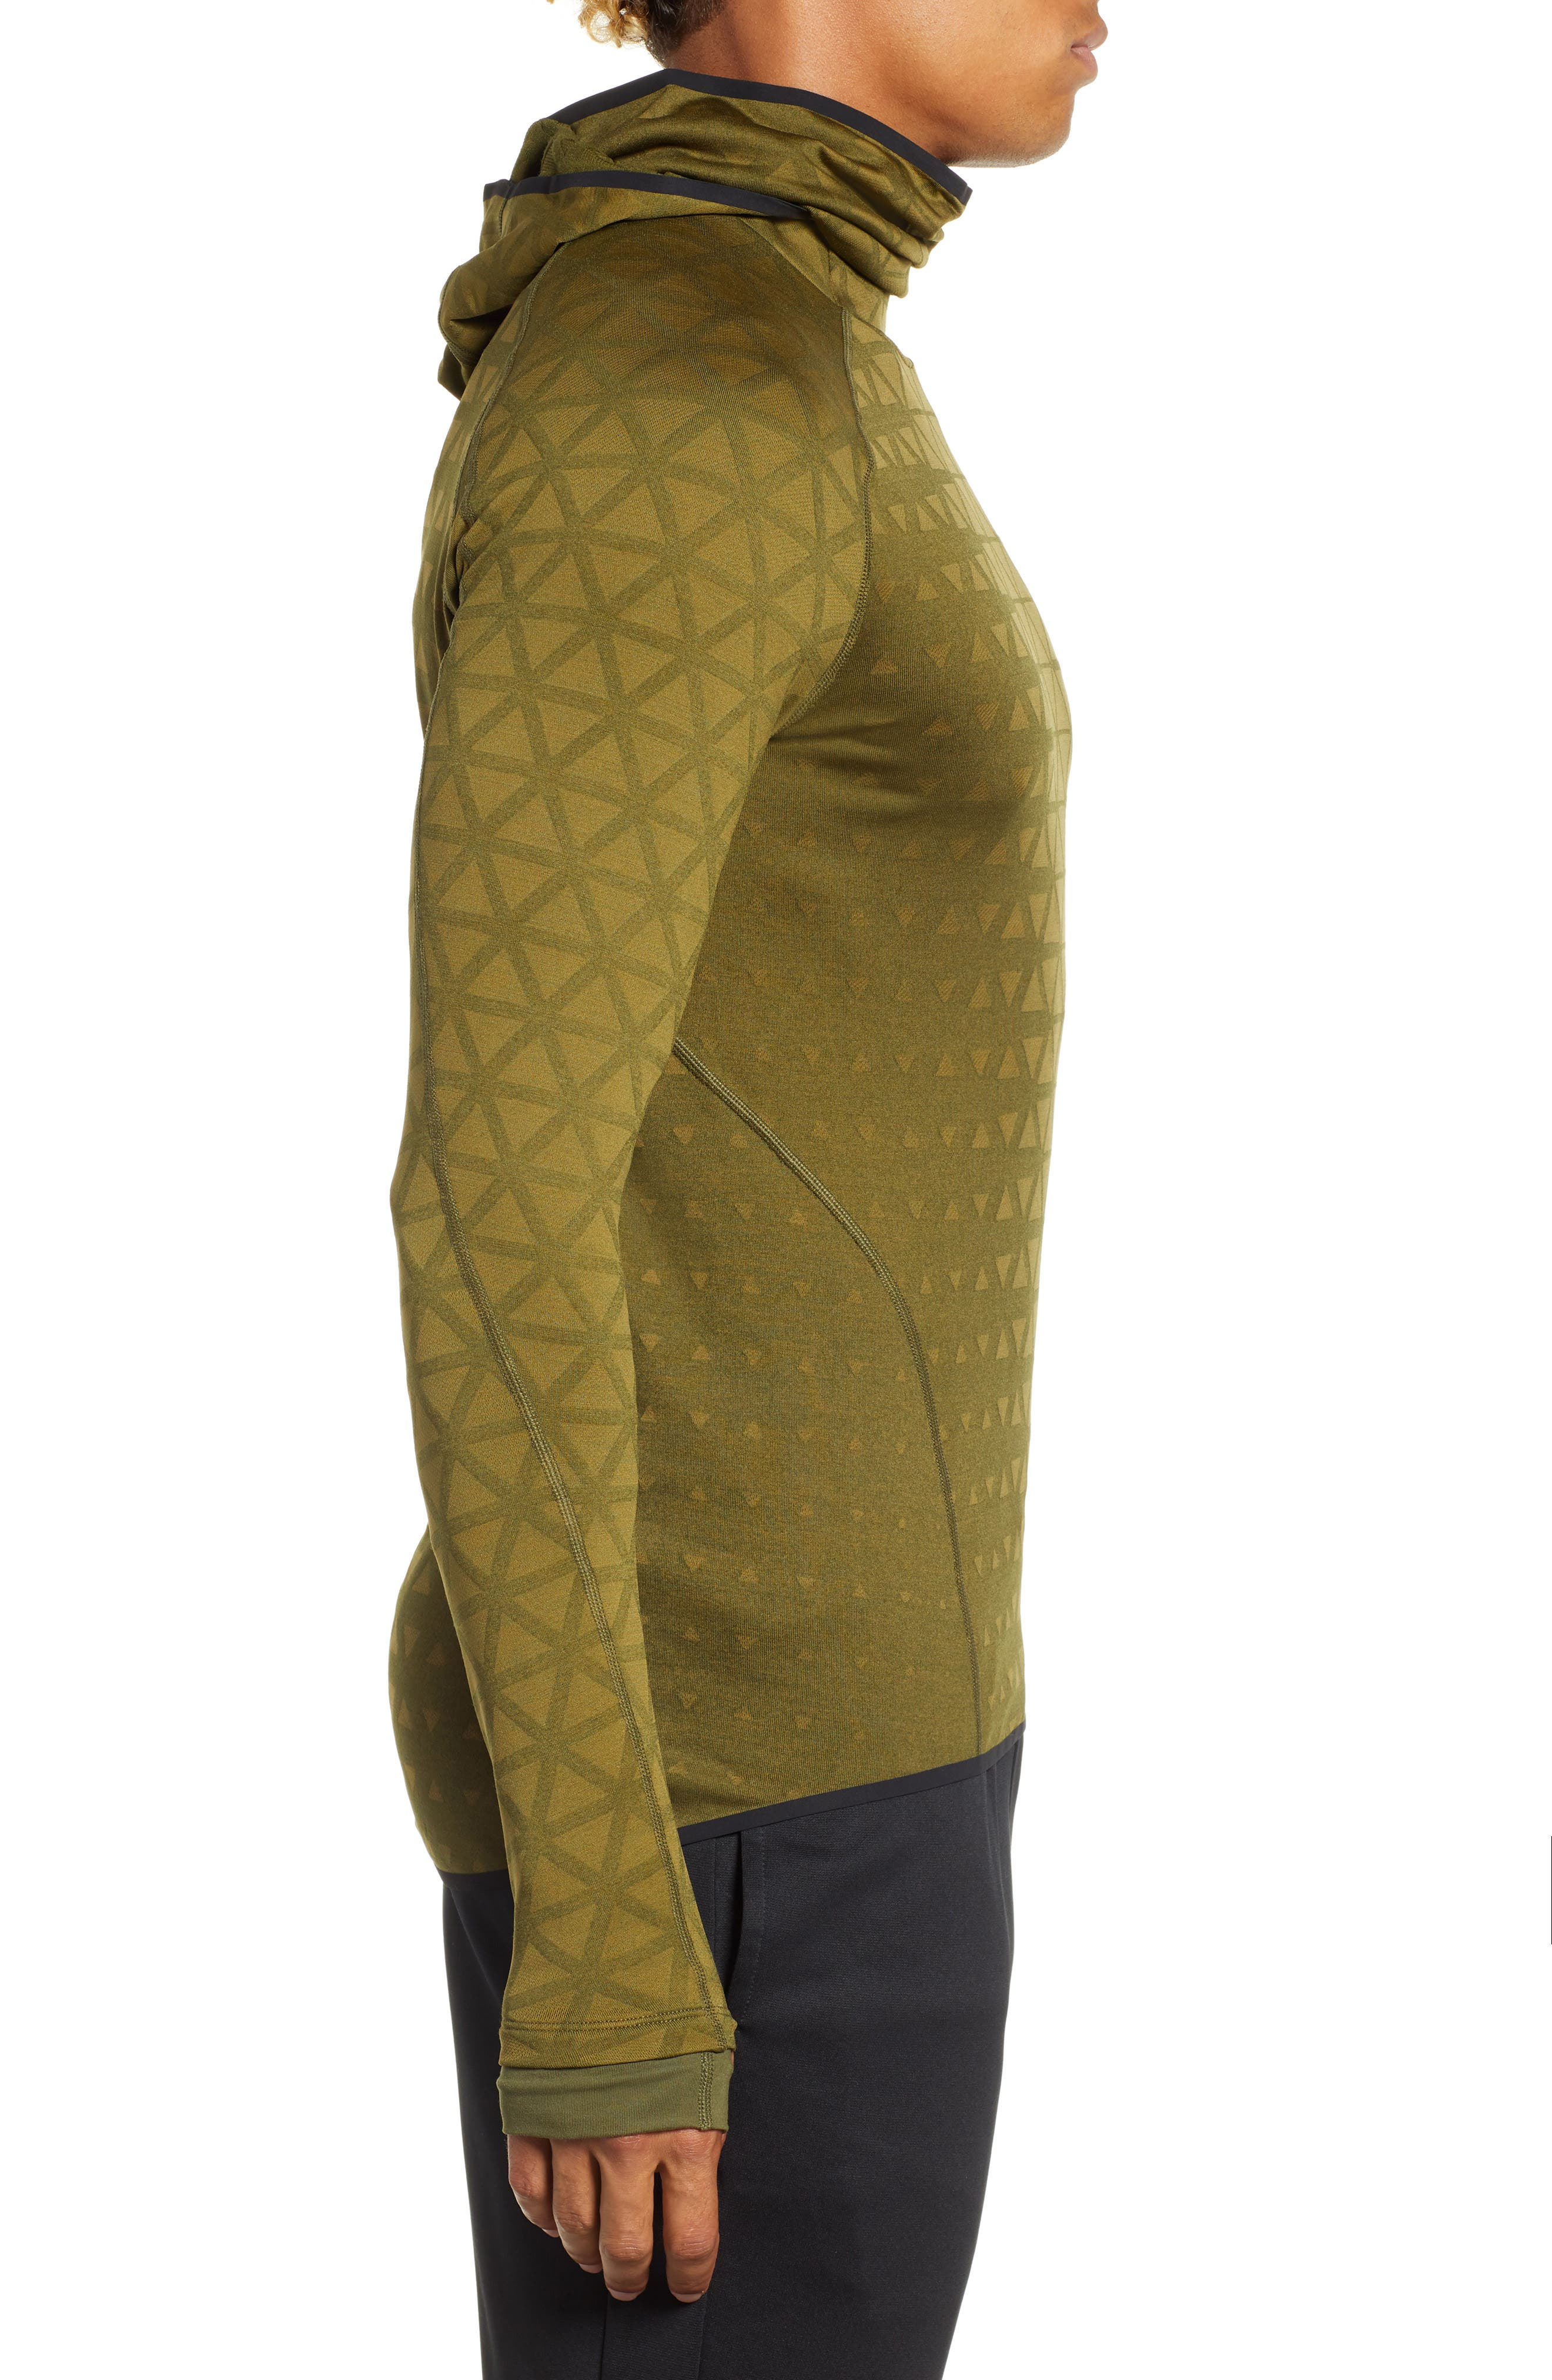 Therma Sphere Hooded Training Top,                             Alternate thumbnail 3, color,                             OLIVE/ OLIVE FLAK/ BLACK